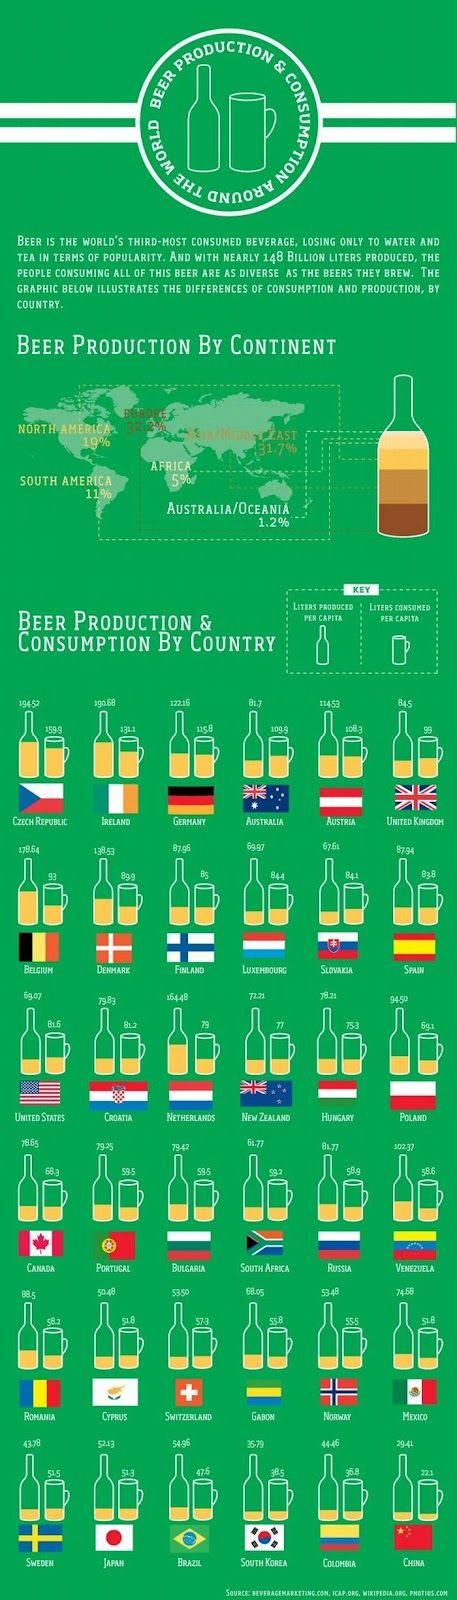 Beer production by continent: Beer Charts, Brewing Beer, Beer 101, Beer Stuff, Beer Products, Beer Infographic, Beer Consumpt, Beerrel Infographic, Global Beer